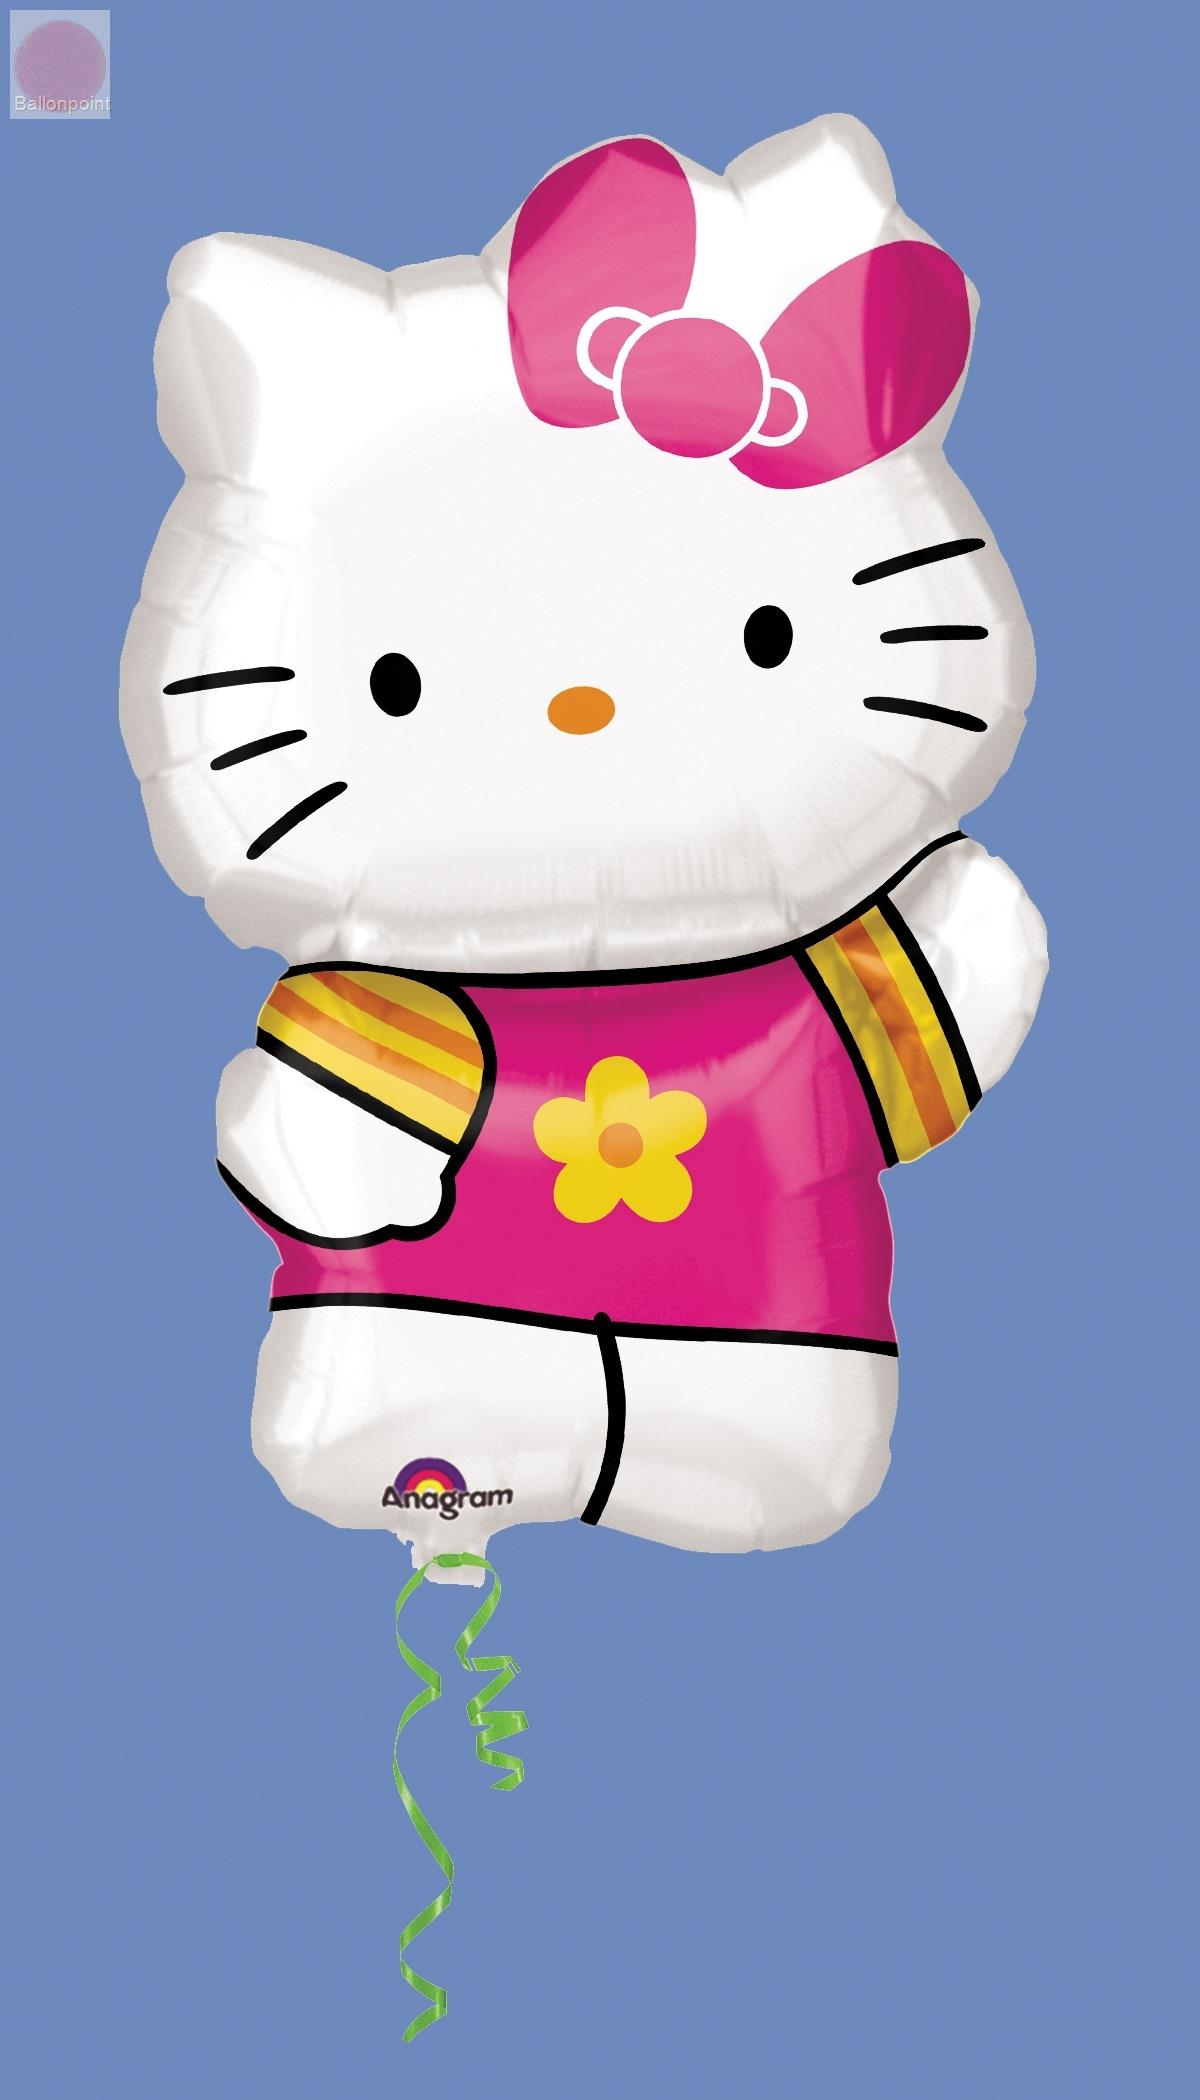 "FOBF063-0635601A Hello Kitty Summer Kitty 41 x 63cm(16x25"")"